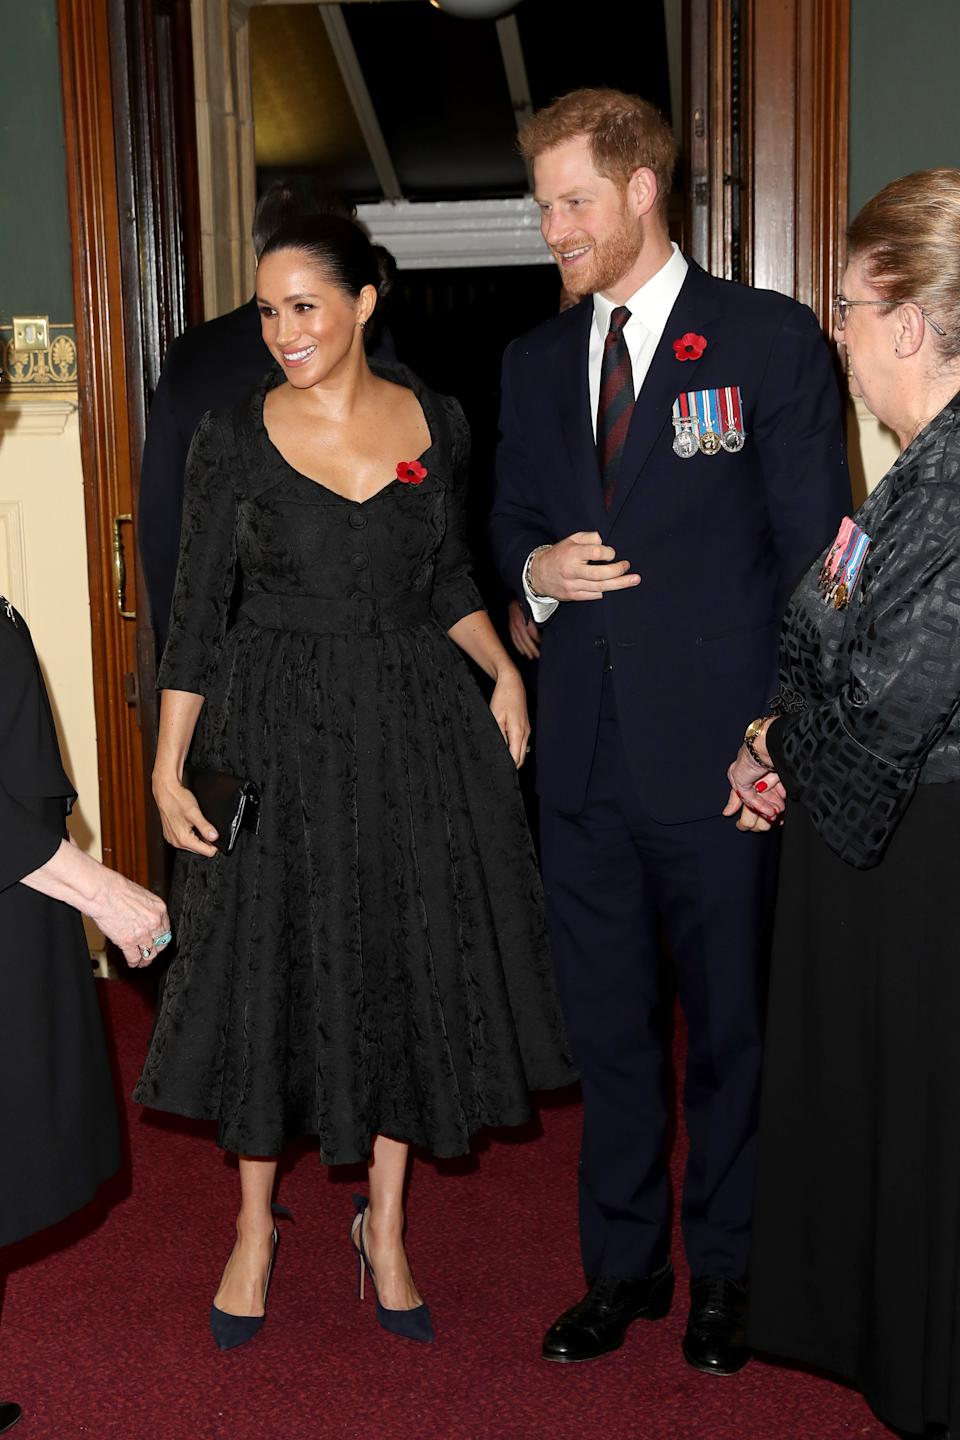 Meghan Markle stunned a brocade black dress by Erdem as she arrived with Prince Harry at the Royal Albert Hall in London [Image: Getty]